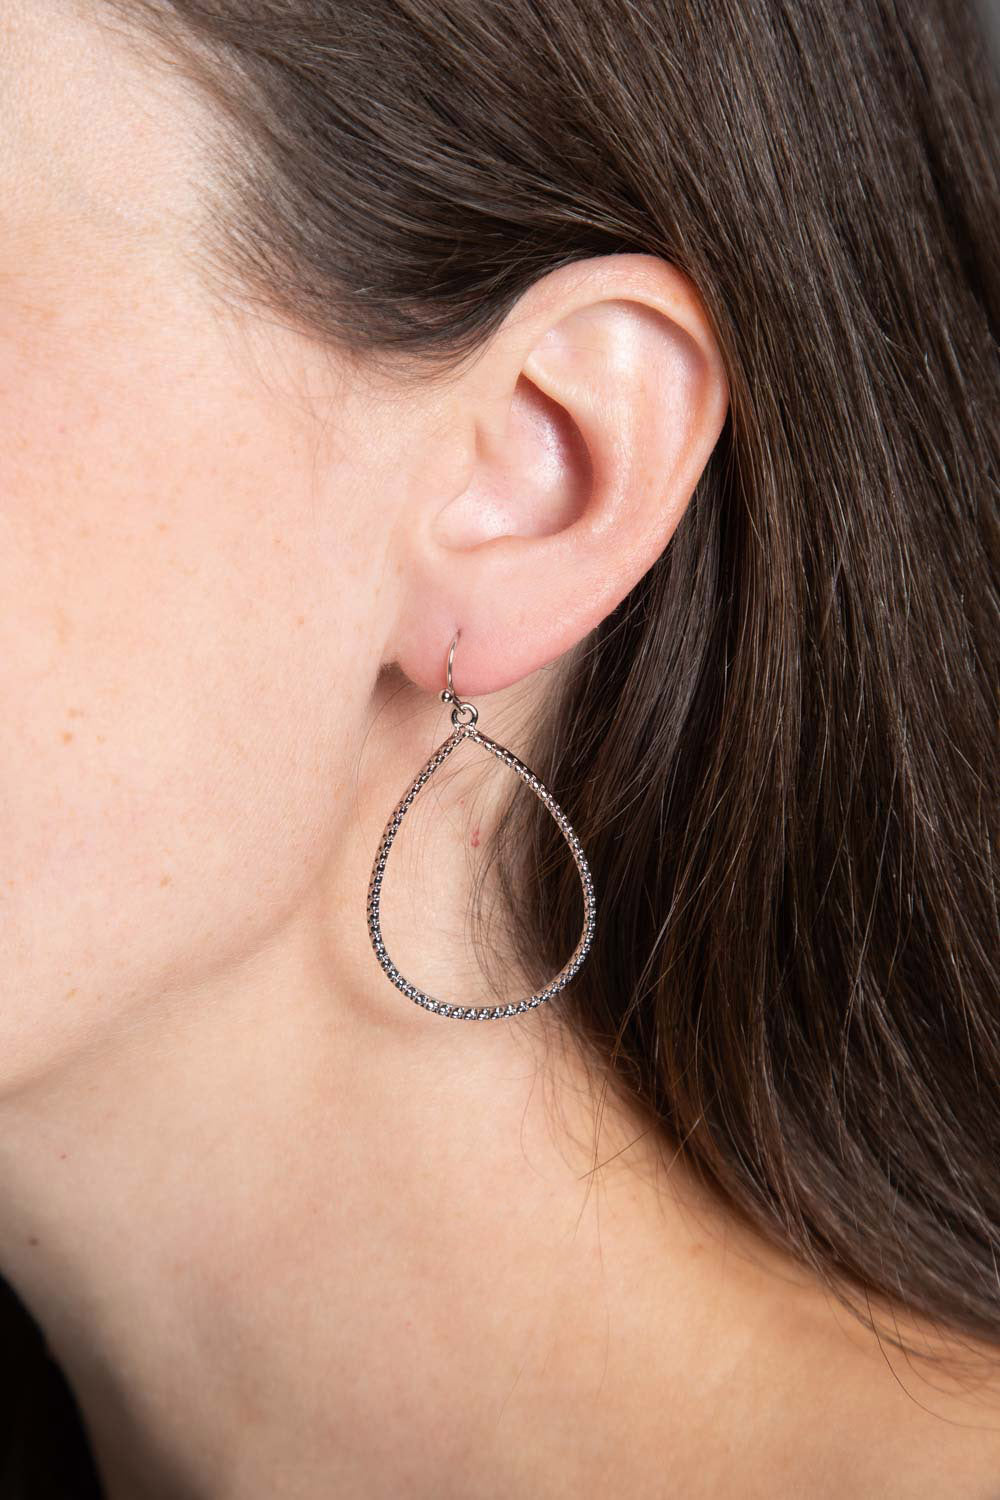 Type 2 Endearing Essential Earrings